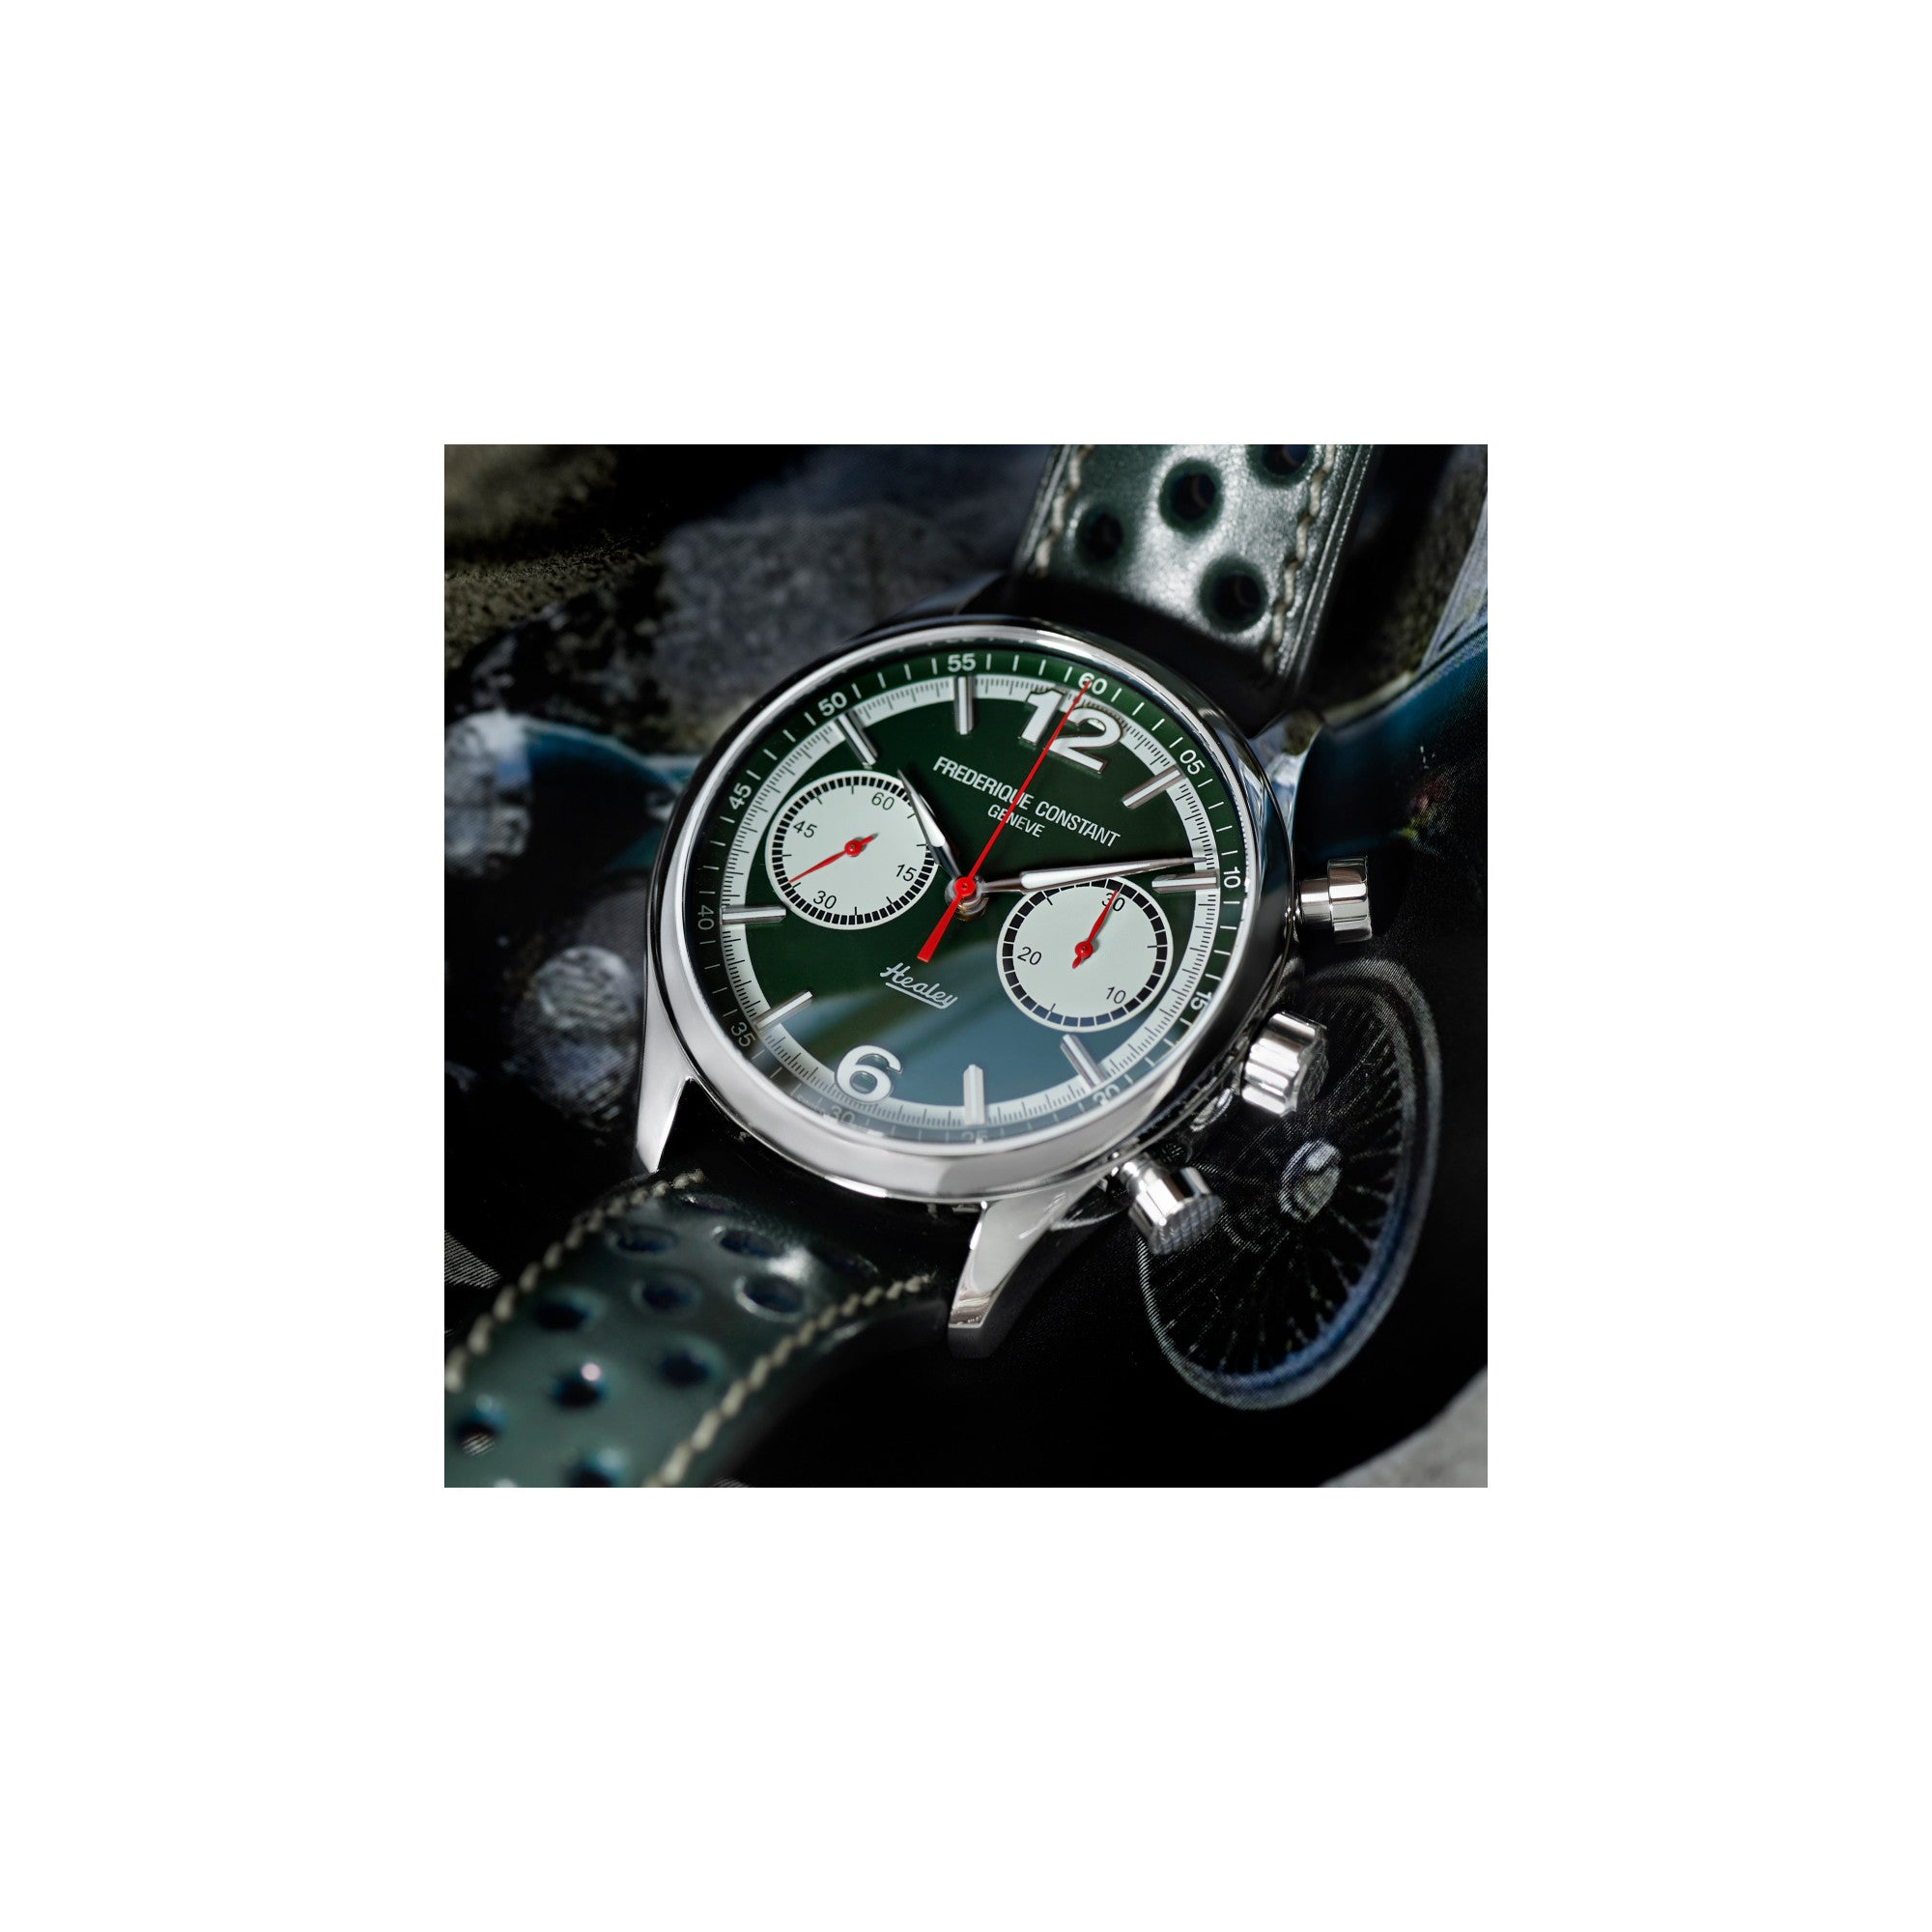 VINTAGE RALLY HEALEY CHRONOGRAPH AUTOMATIC